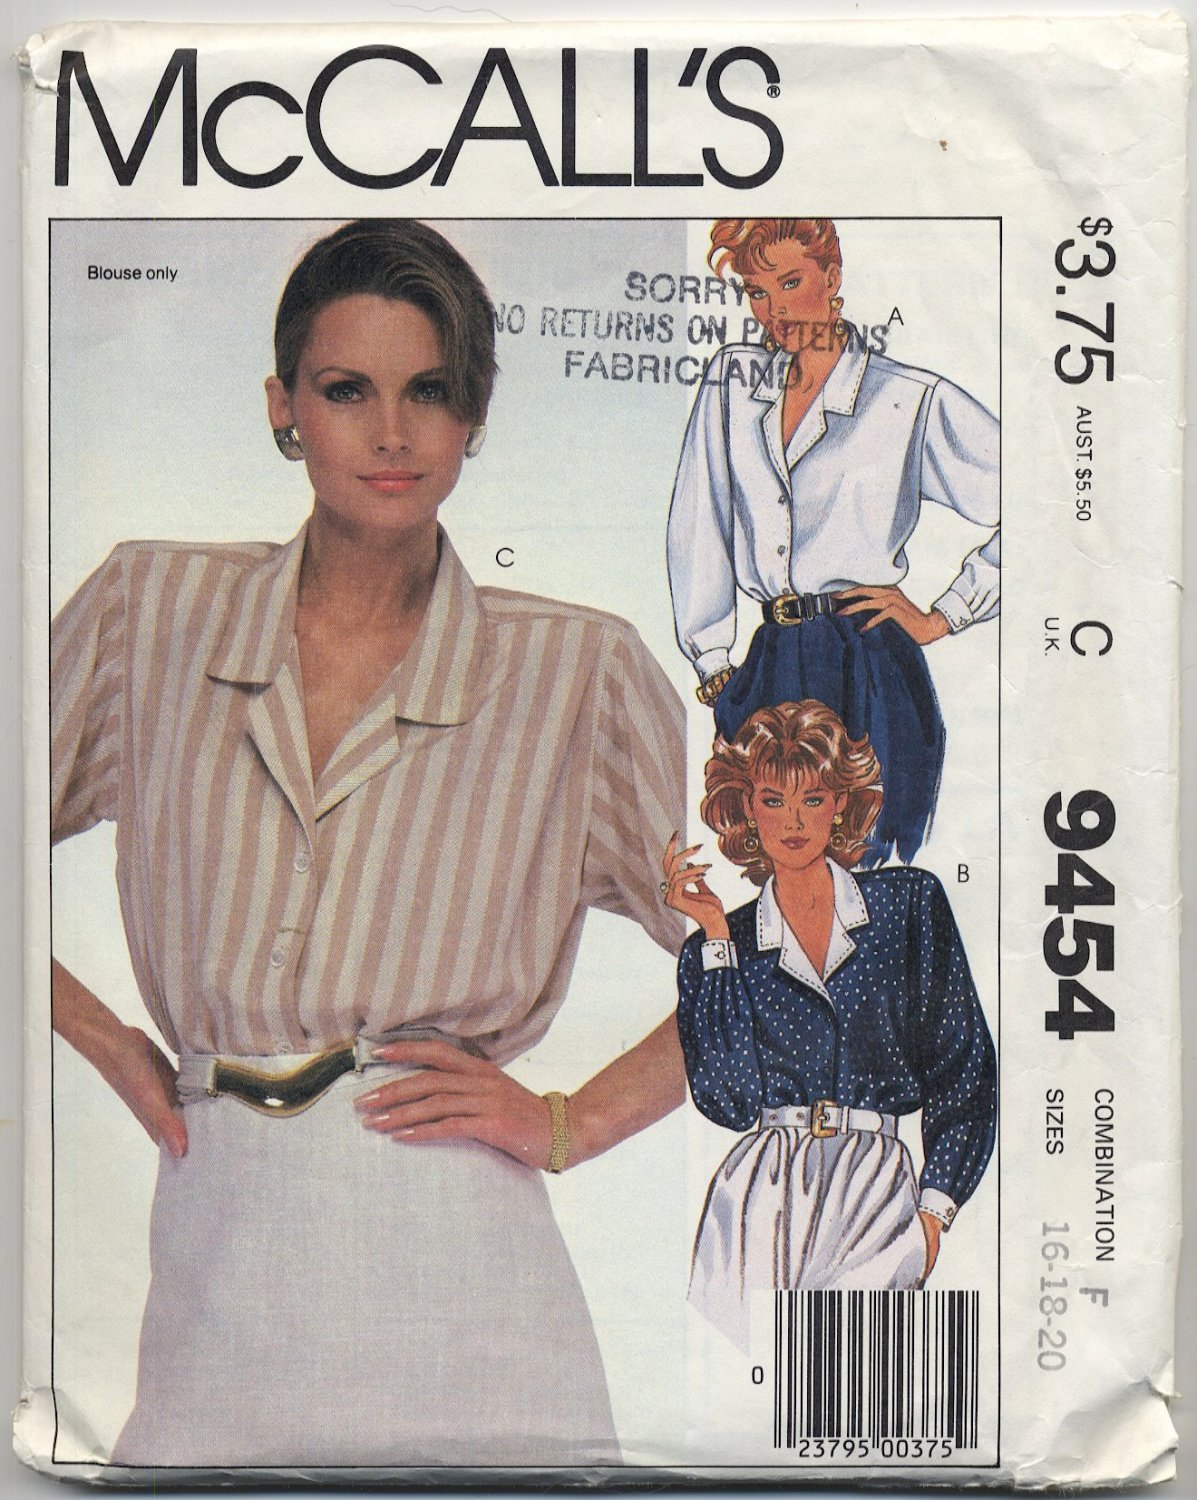 McCall's 9454 Blouses Sewing Pattern Misses' 16 18 20 Button Closure Back Yoke Office Professional